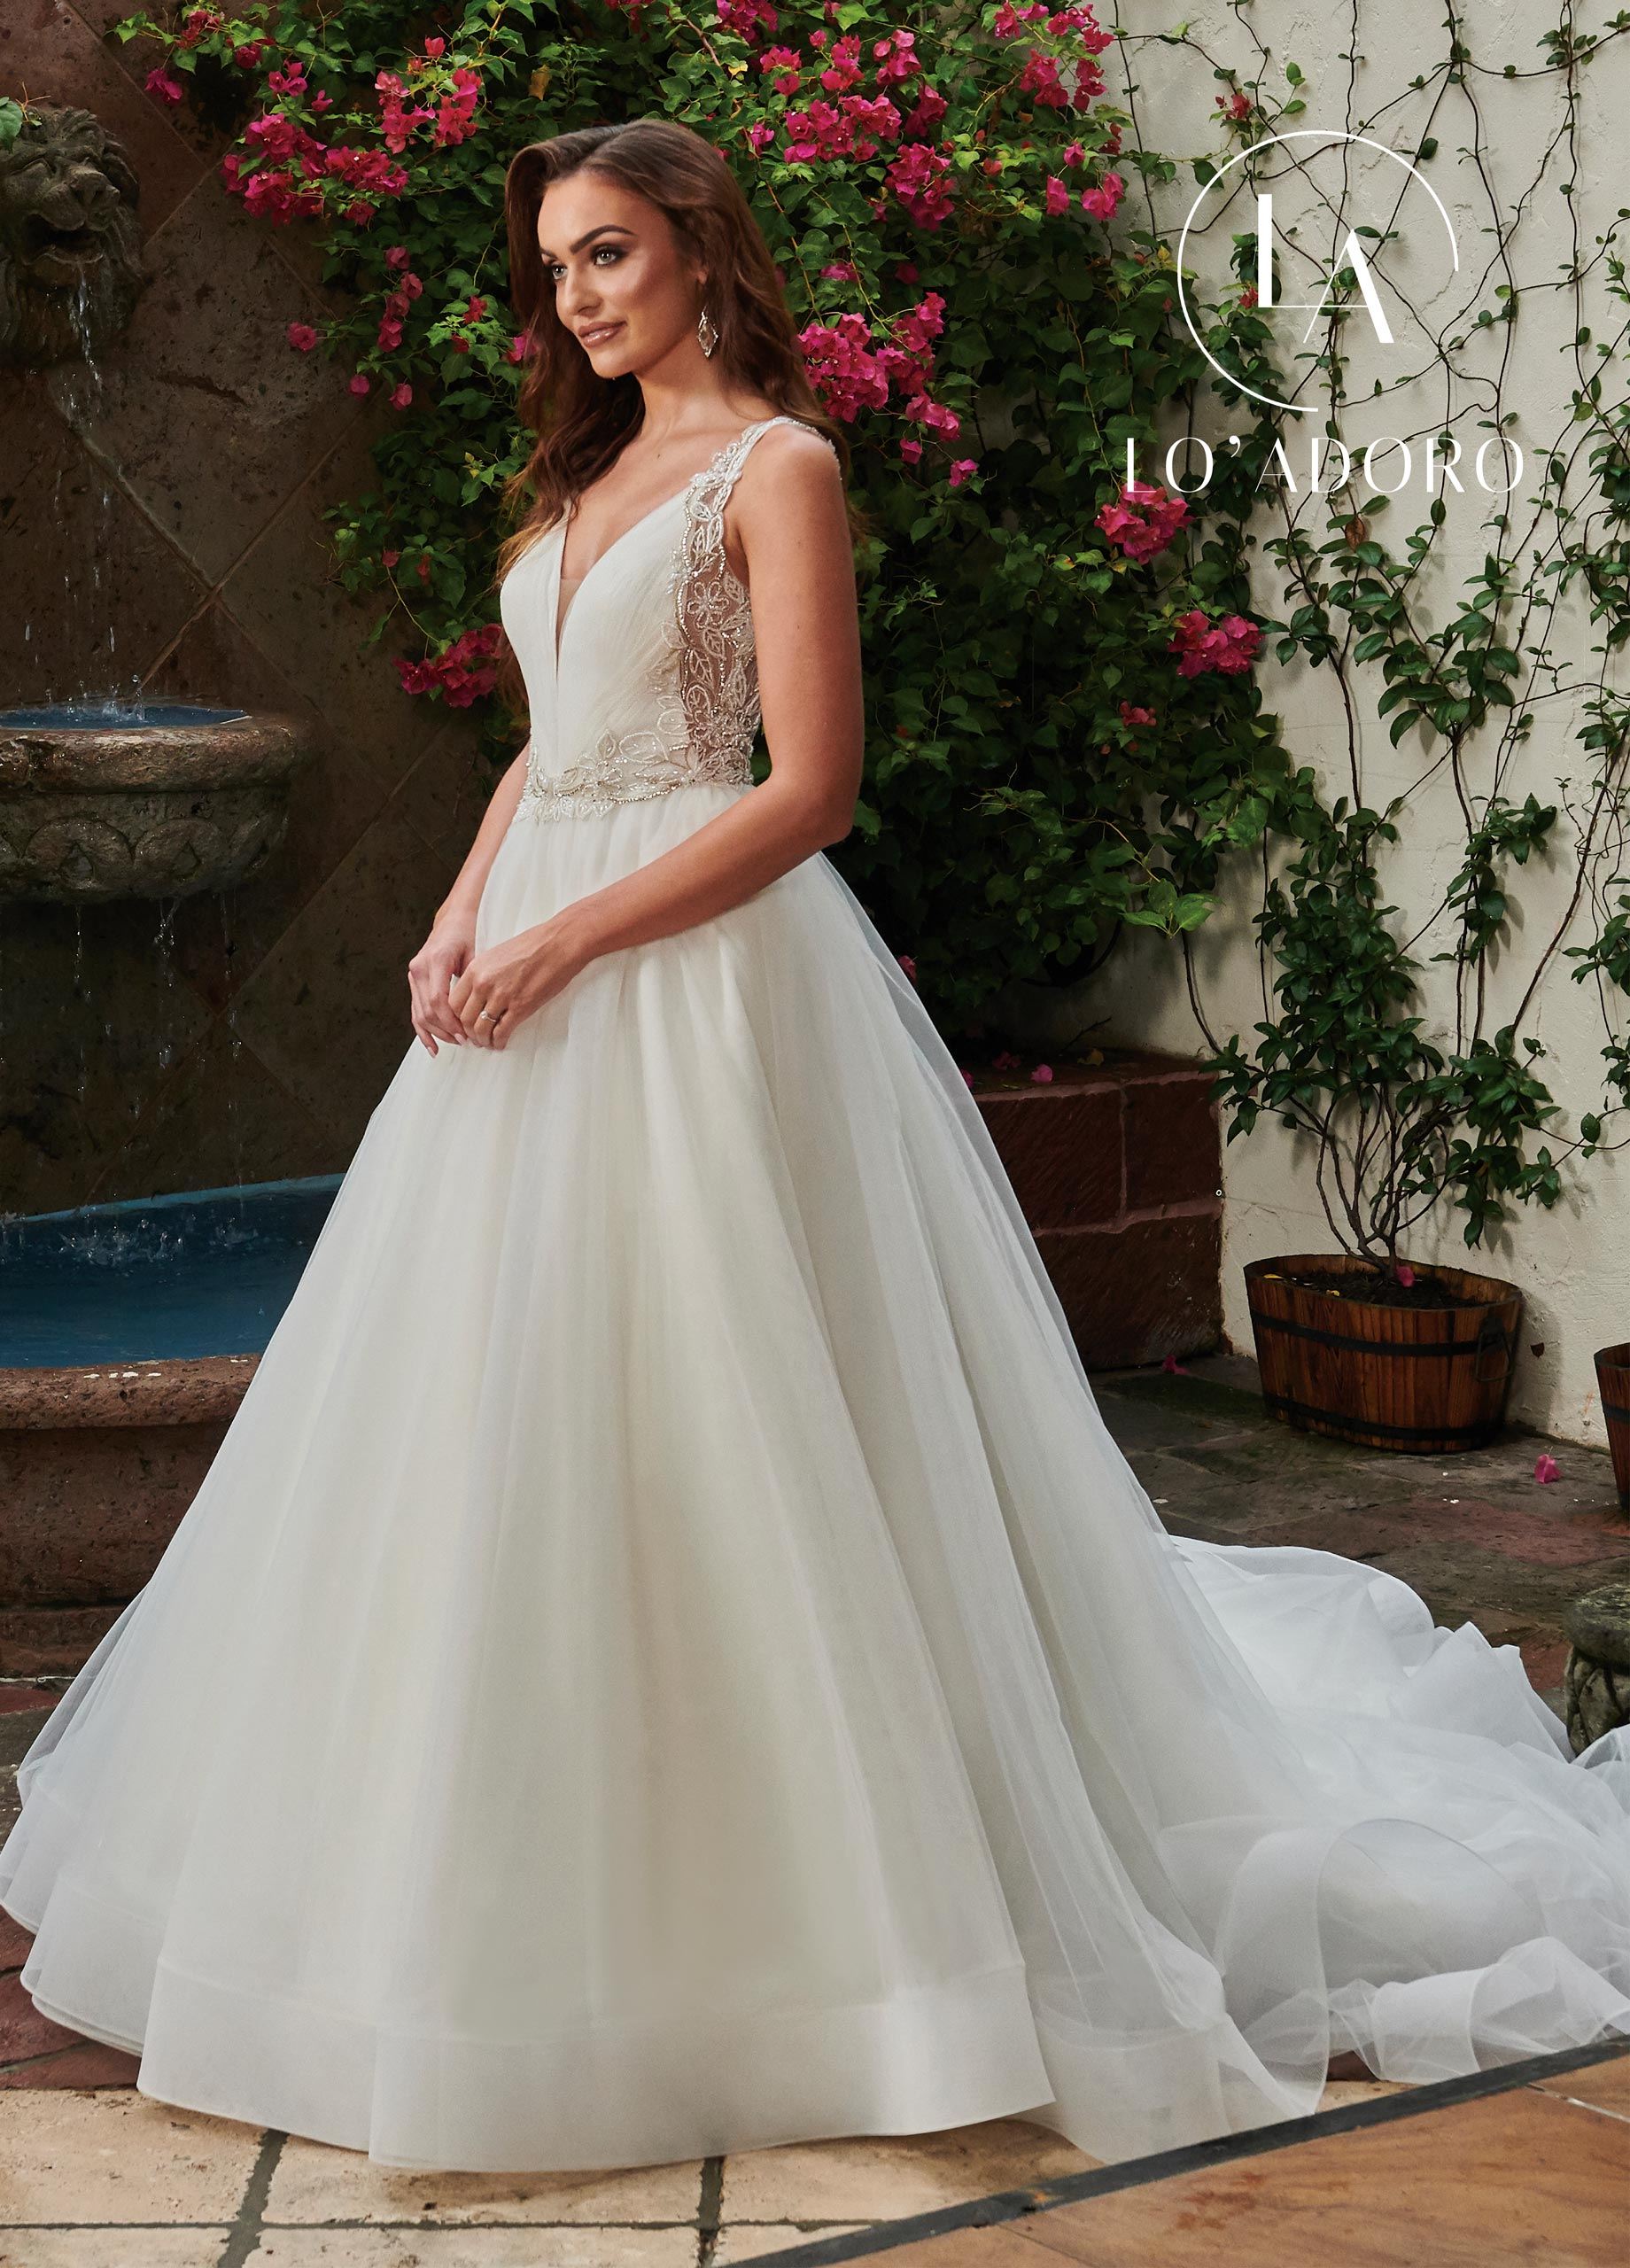 V-Neck Ball Gowns Lo' Adoro Bridal in White Color